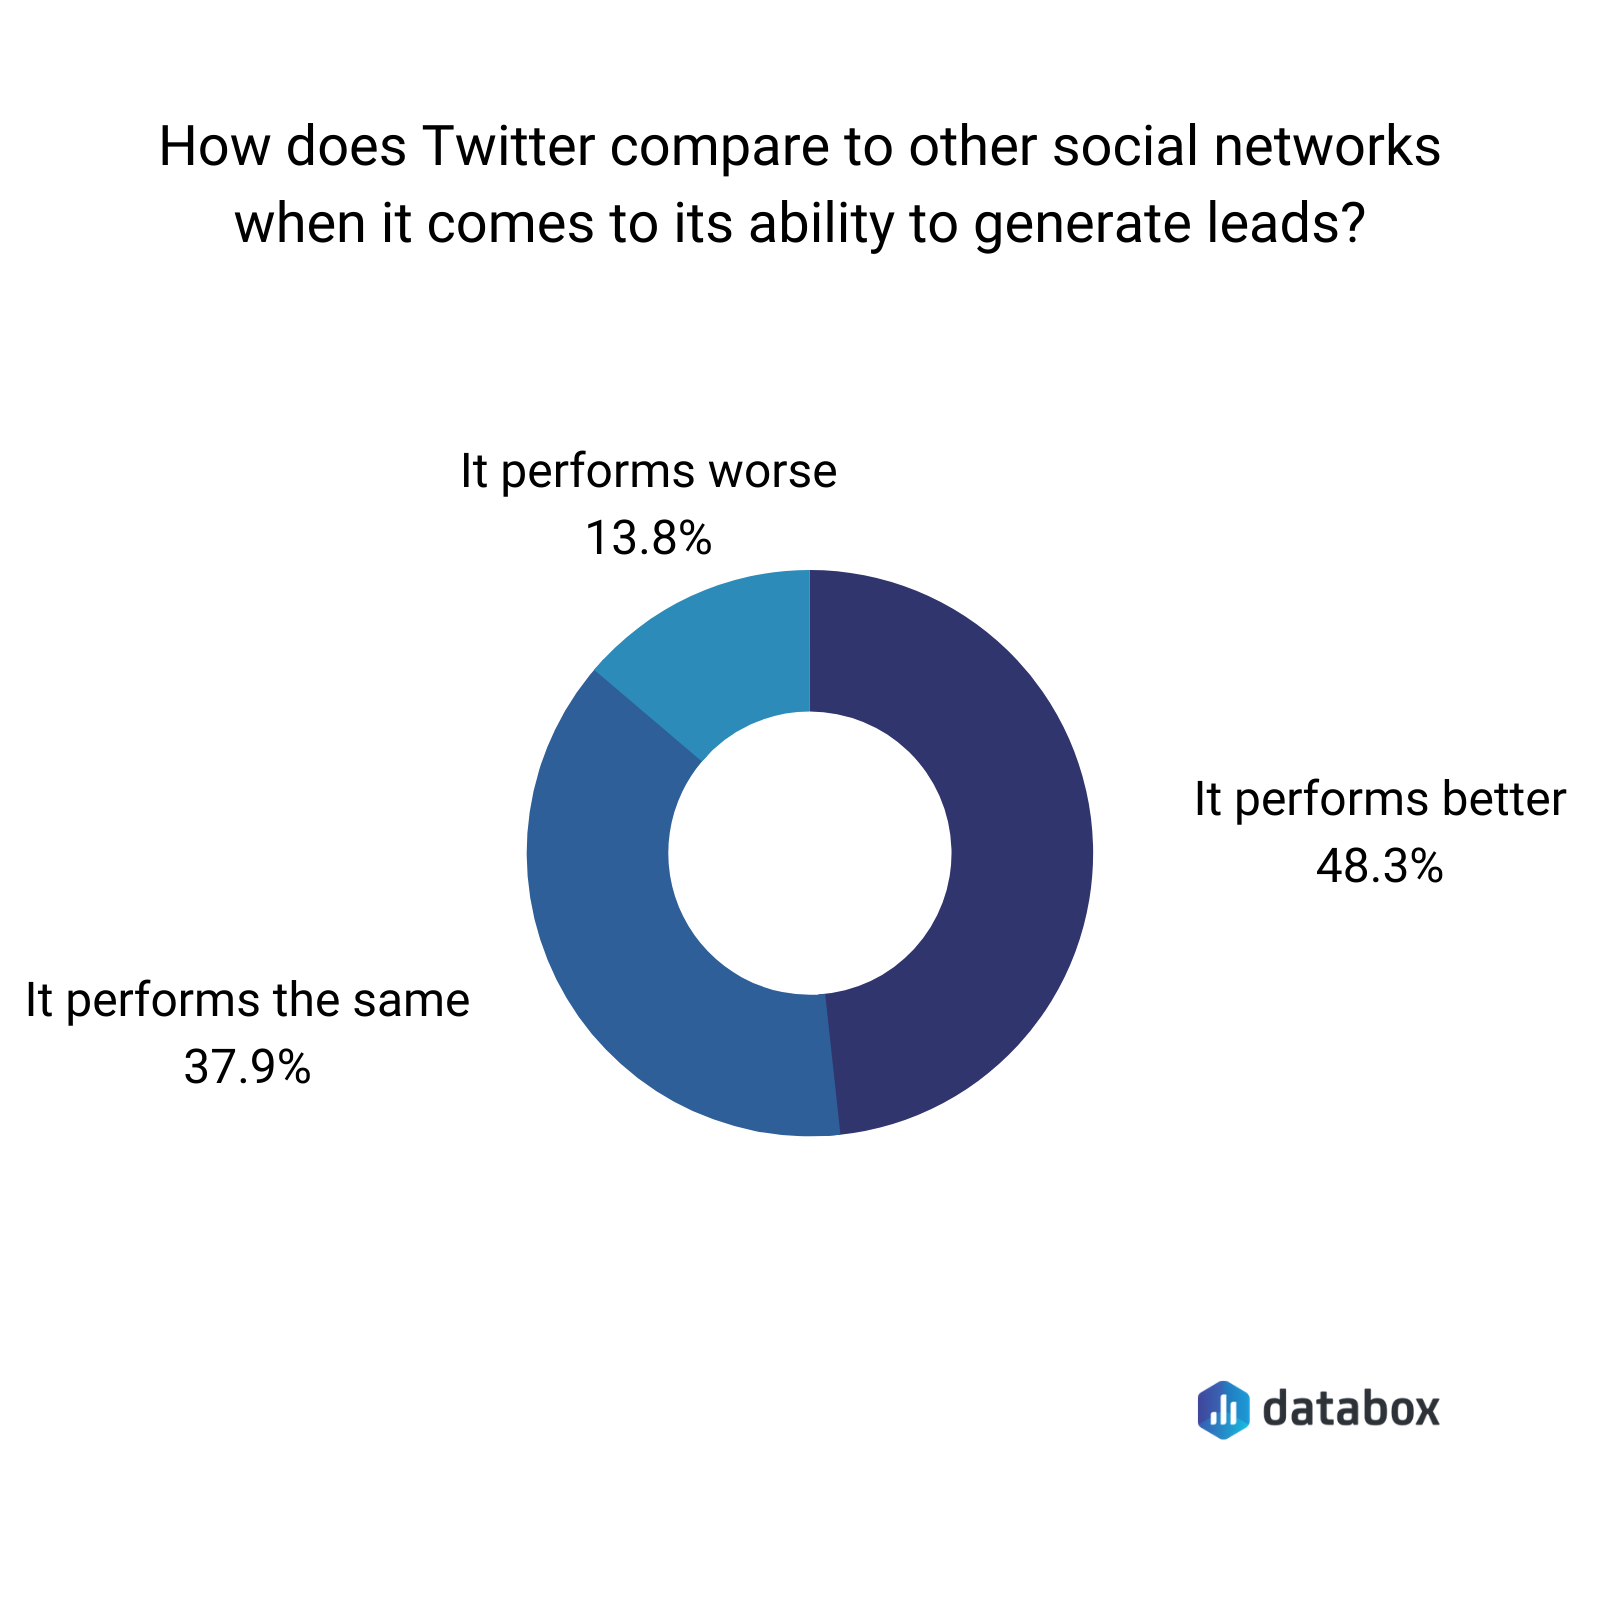 comparing Twitter to other social networks for lead generation ability